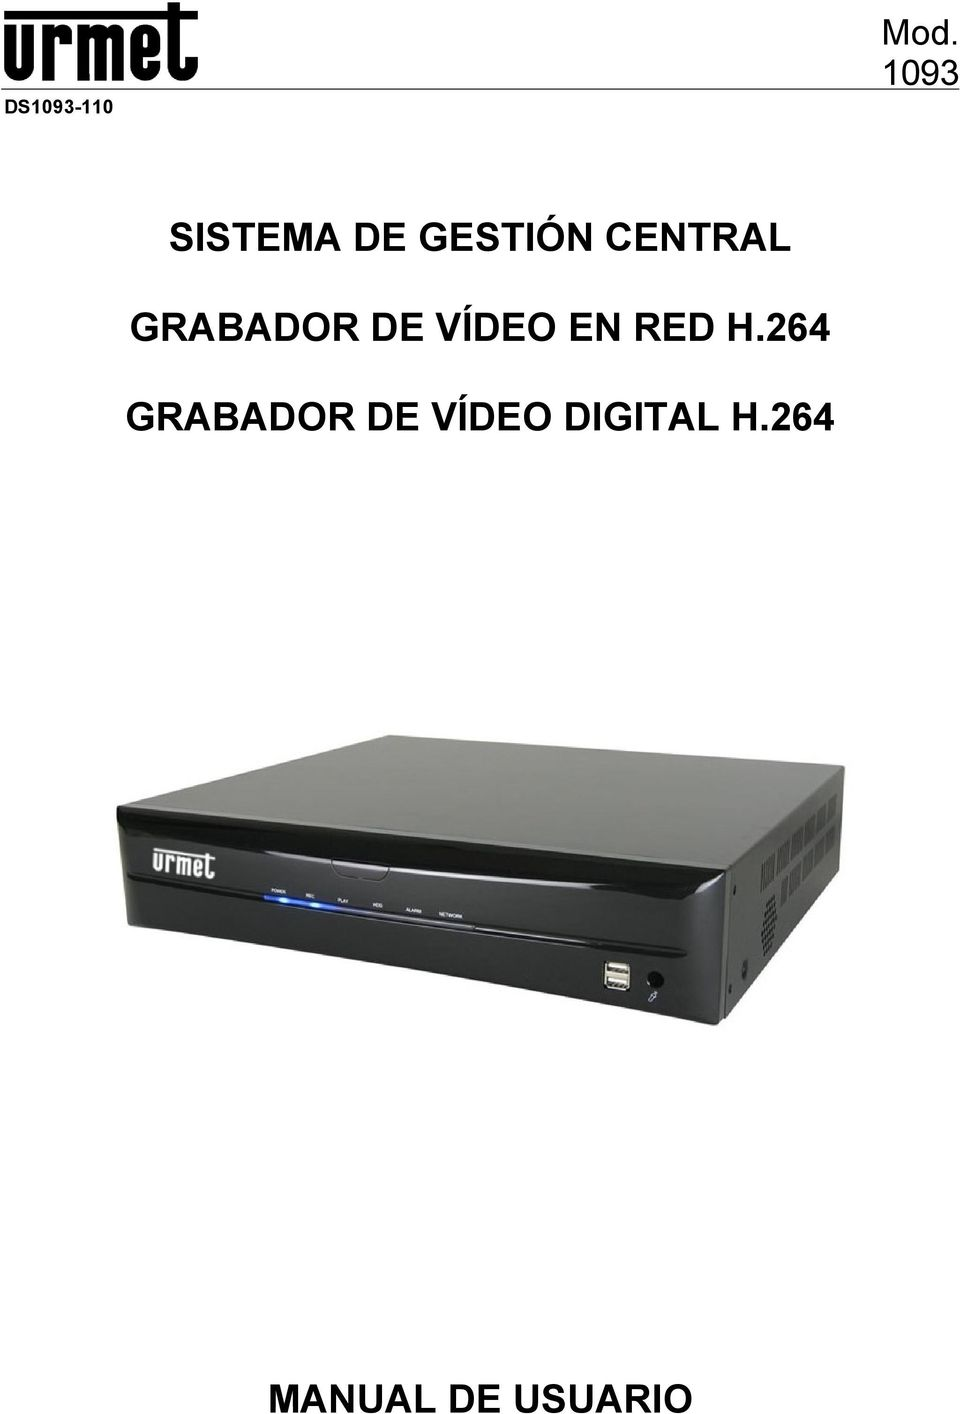 GRABADOR DE VÍDEO EN RED H.